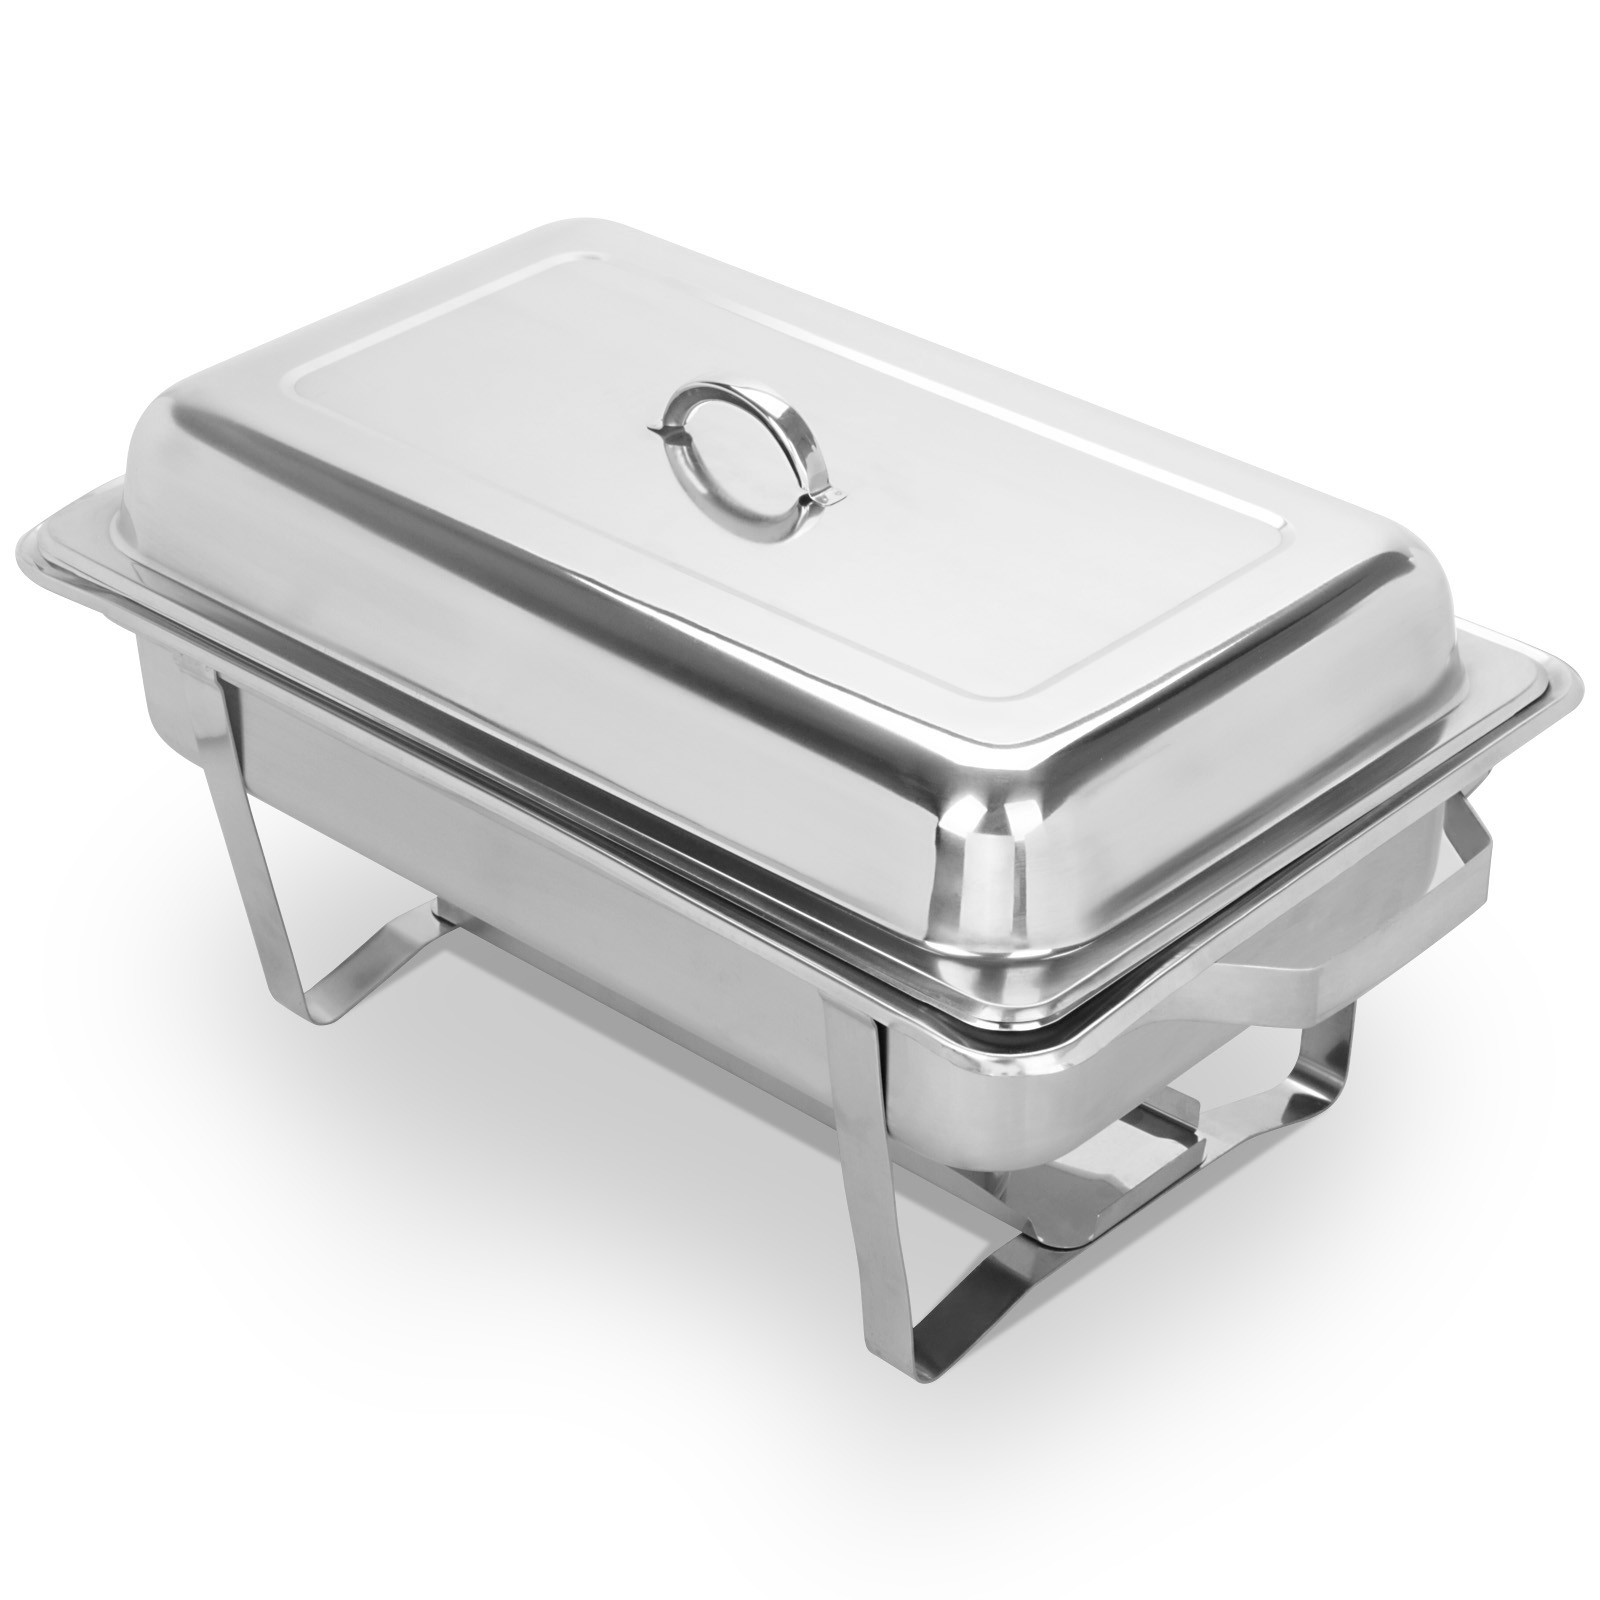 4 pack chafing dish sets buffet catering 9 quart stainless steel rectangular ebay